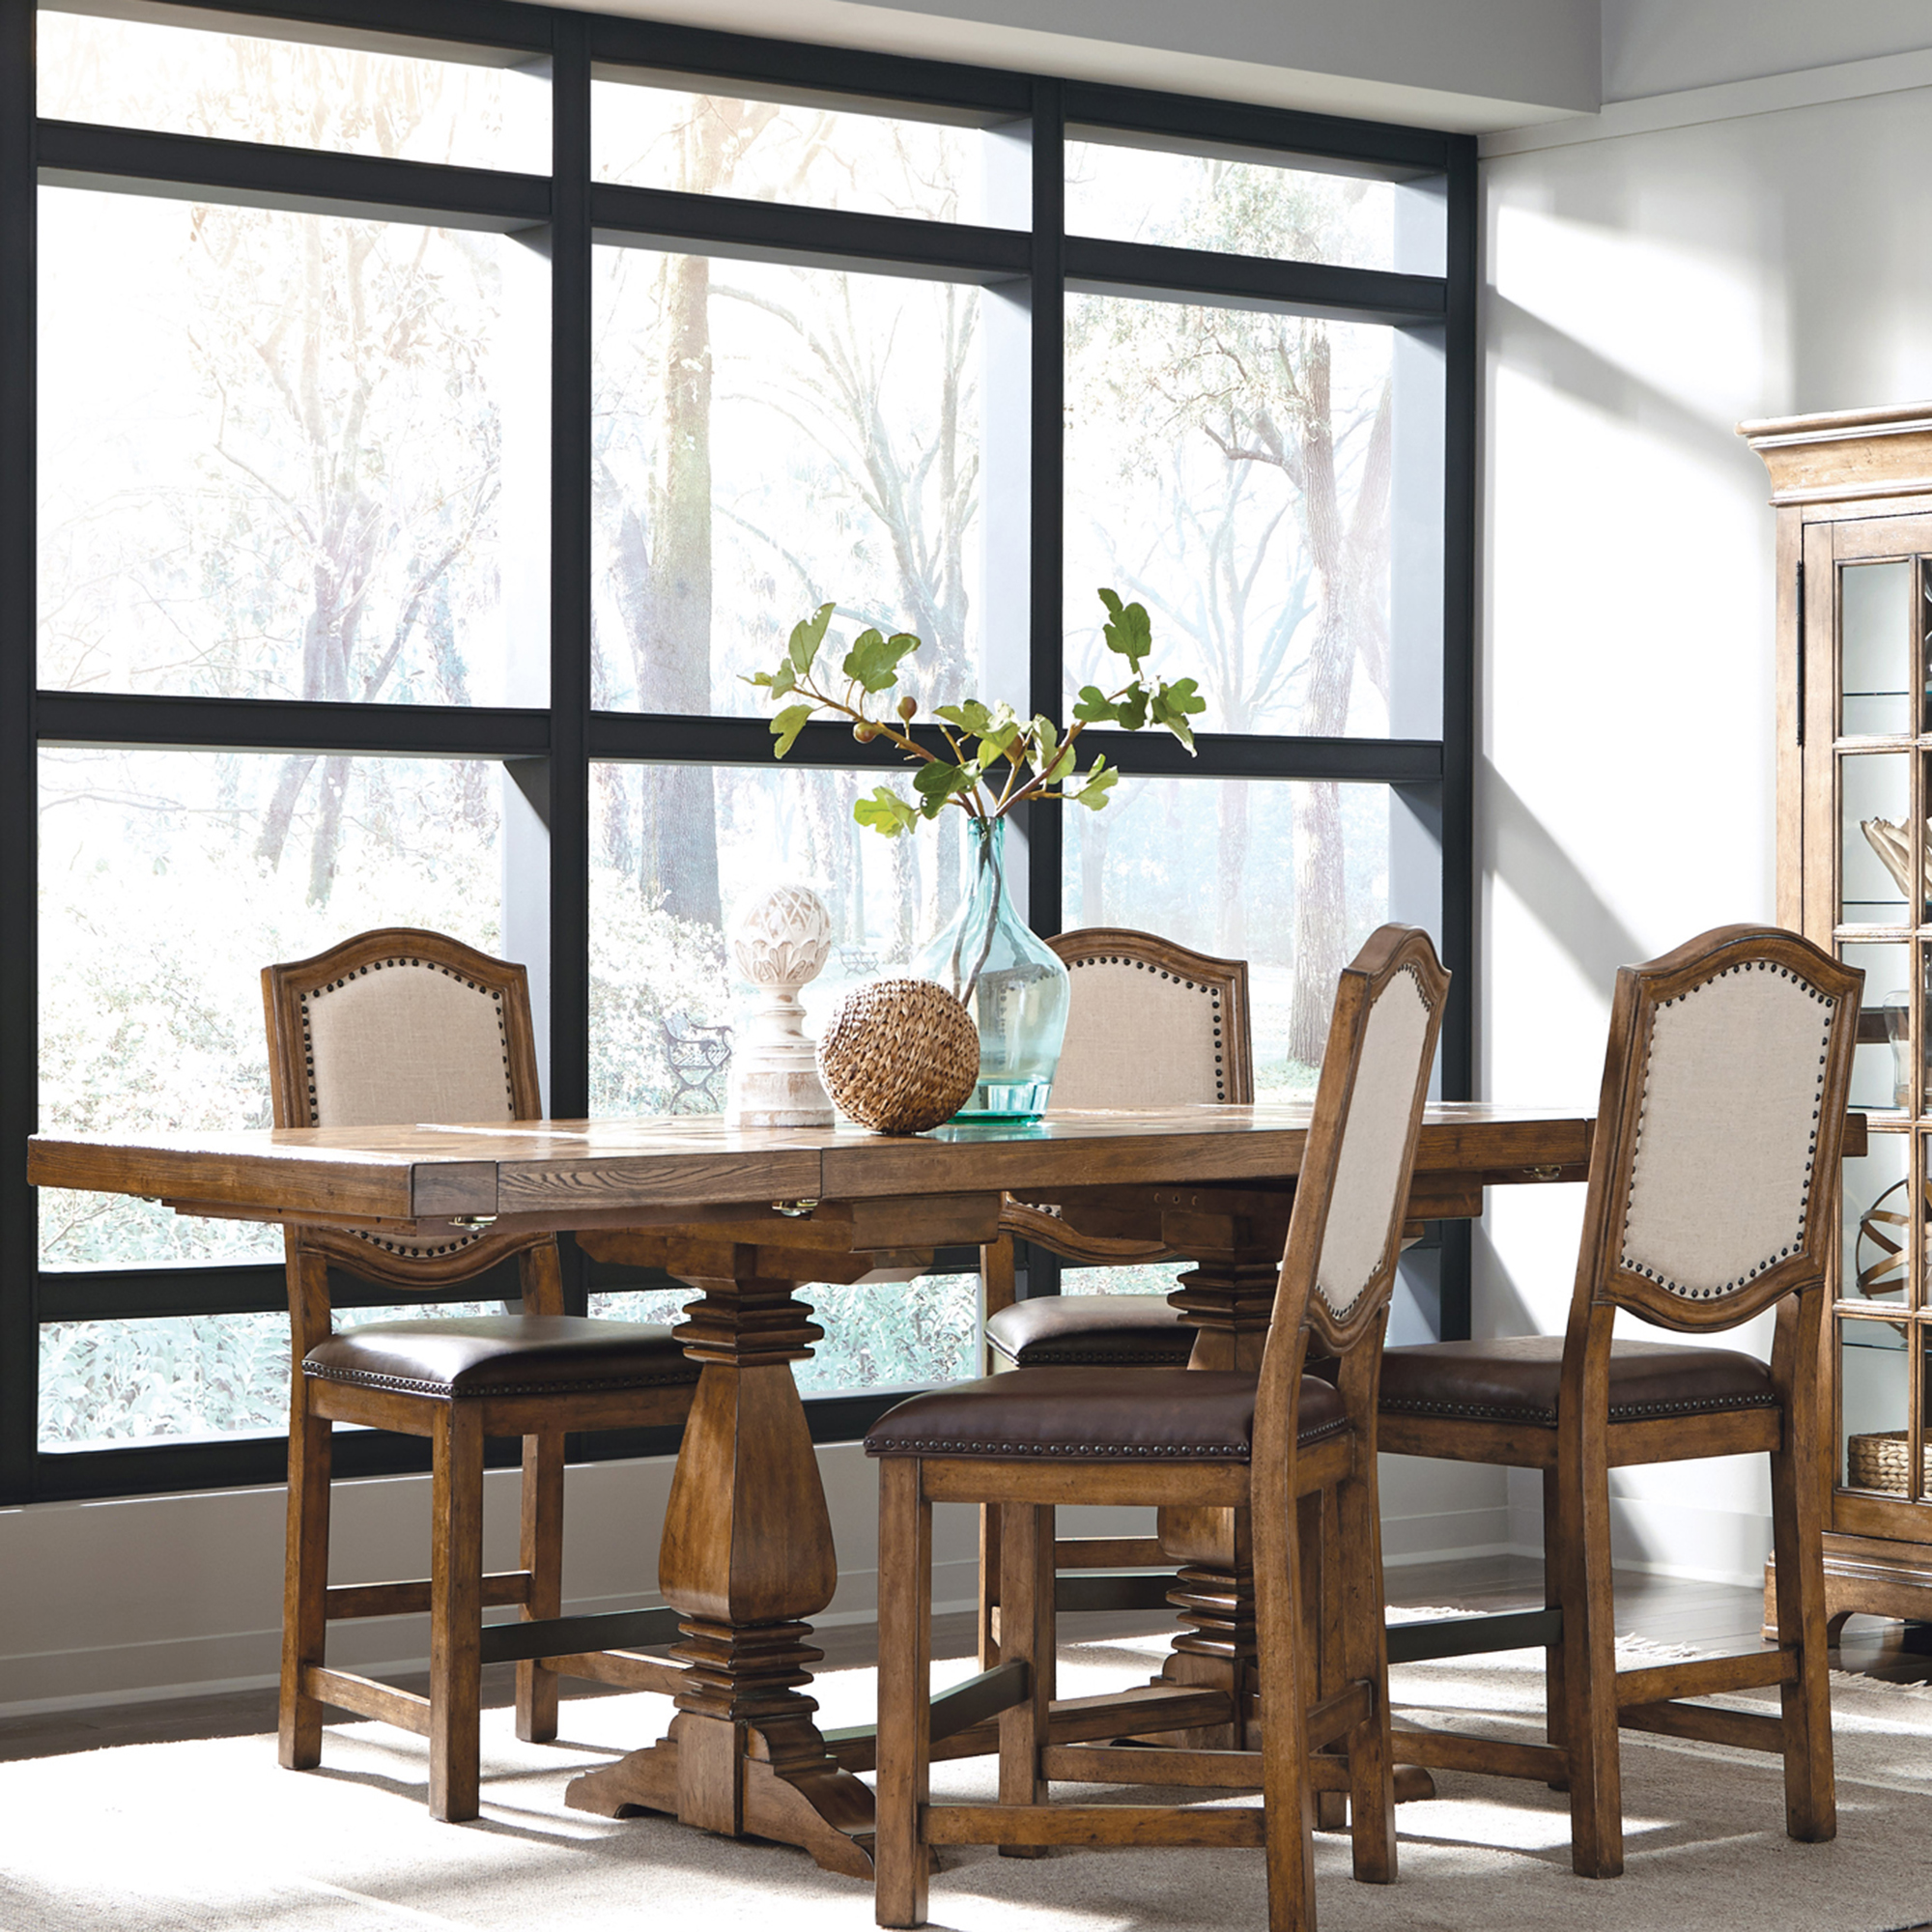 American Attitude Dining Table With Cross Hatch Top In Oak